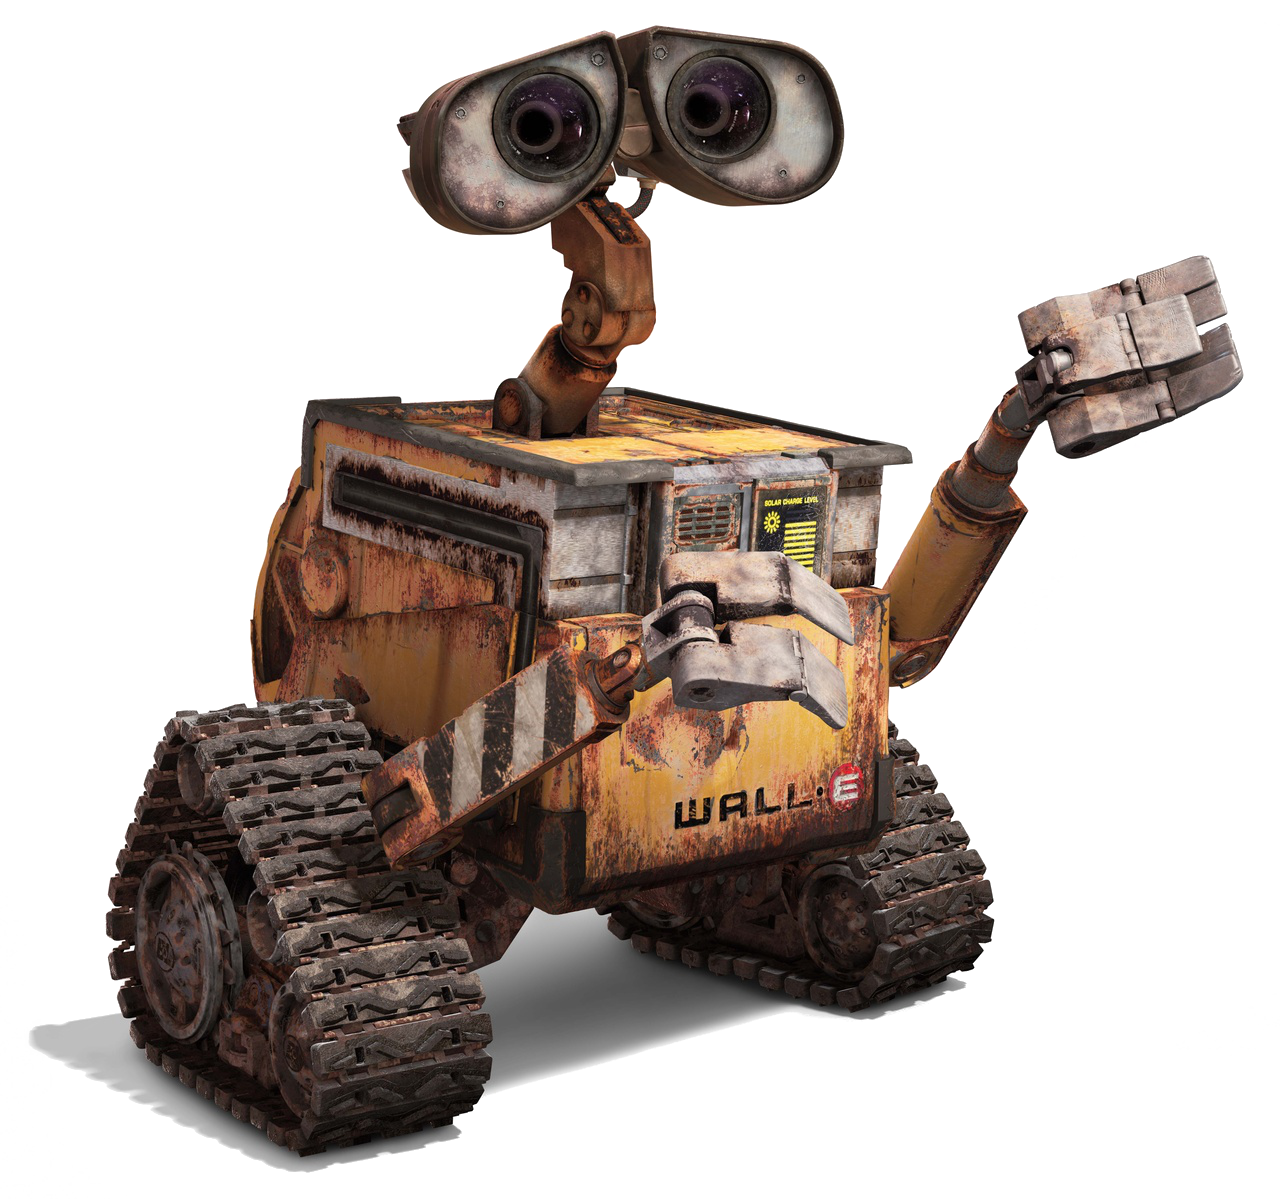 wall-e png spaceship